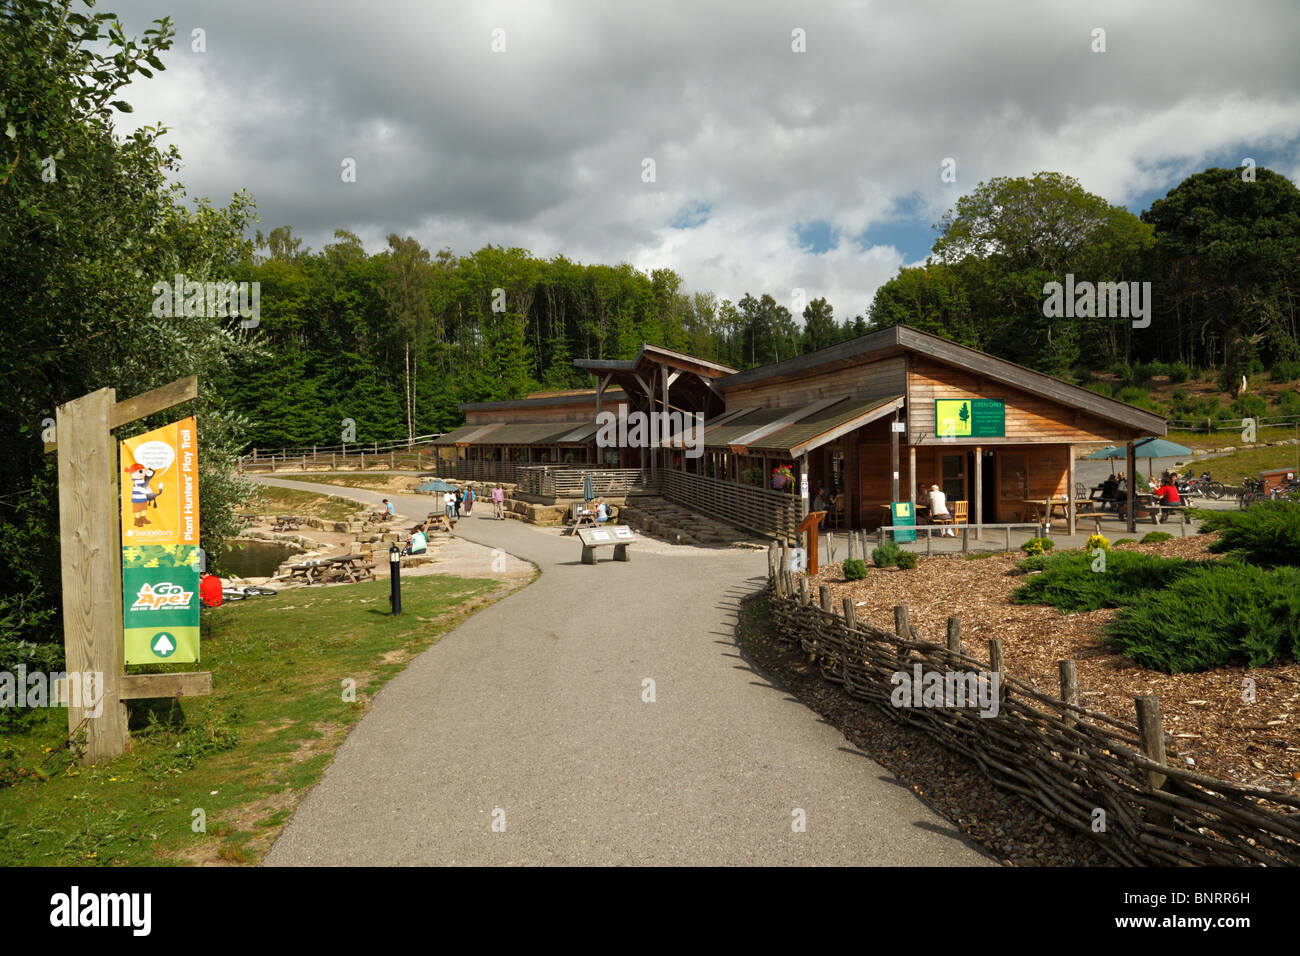 Bedgebury National Pinetum and forest visitor centre. - Stock Image